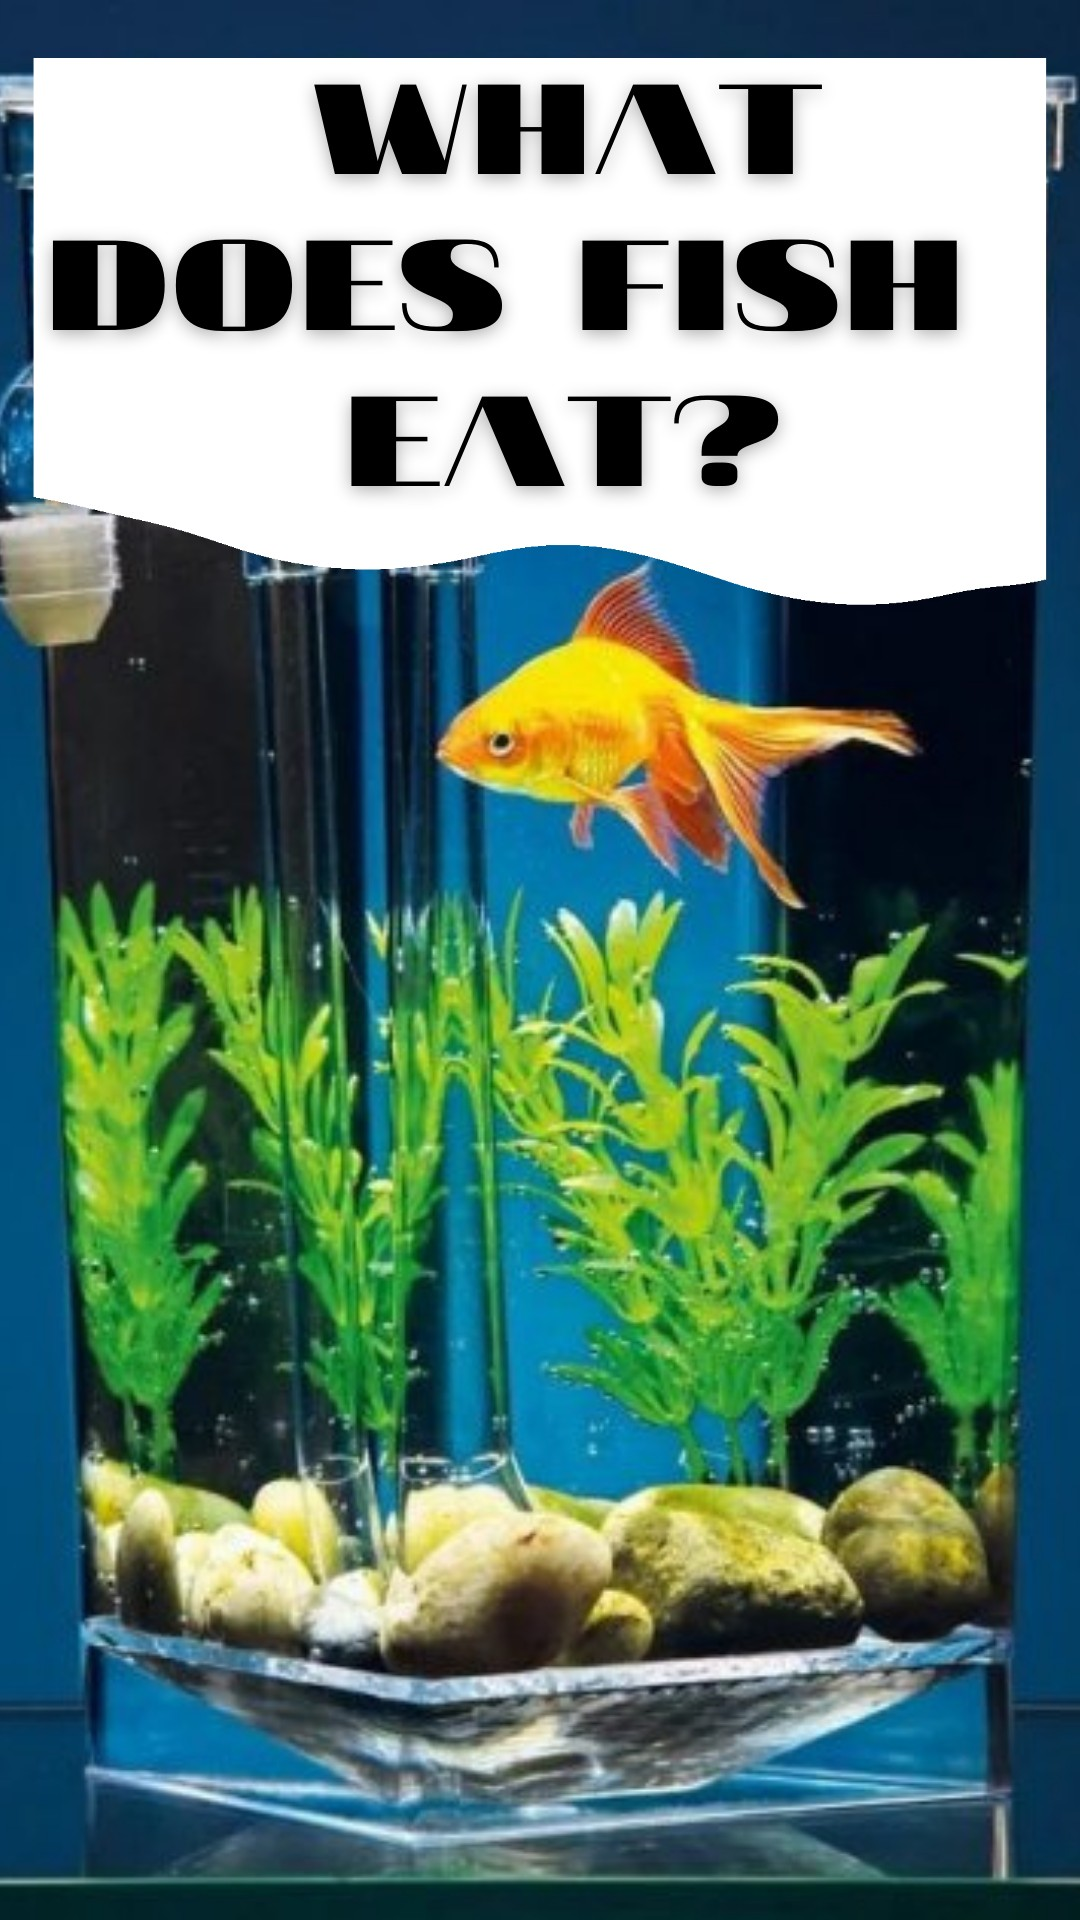 What does fish eat?